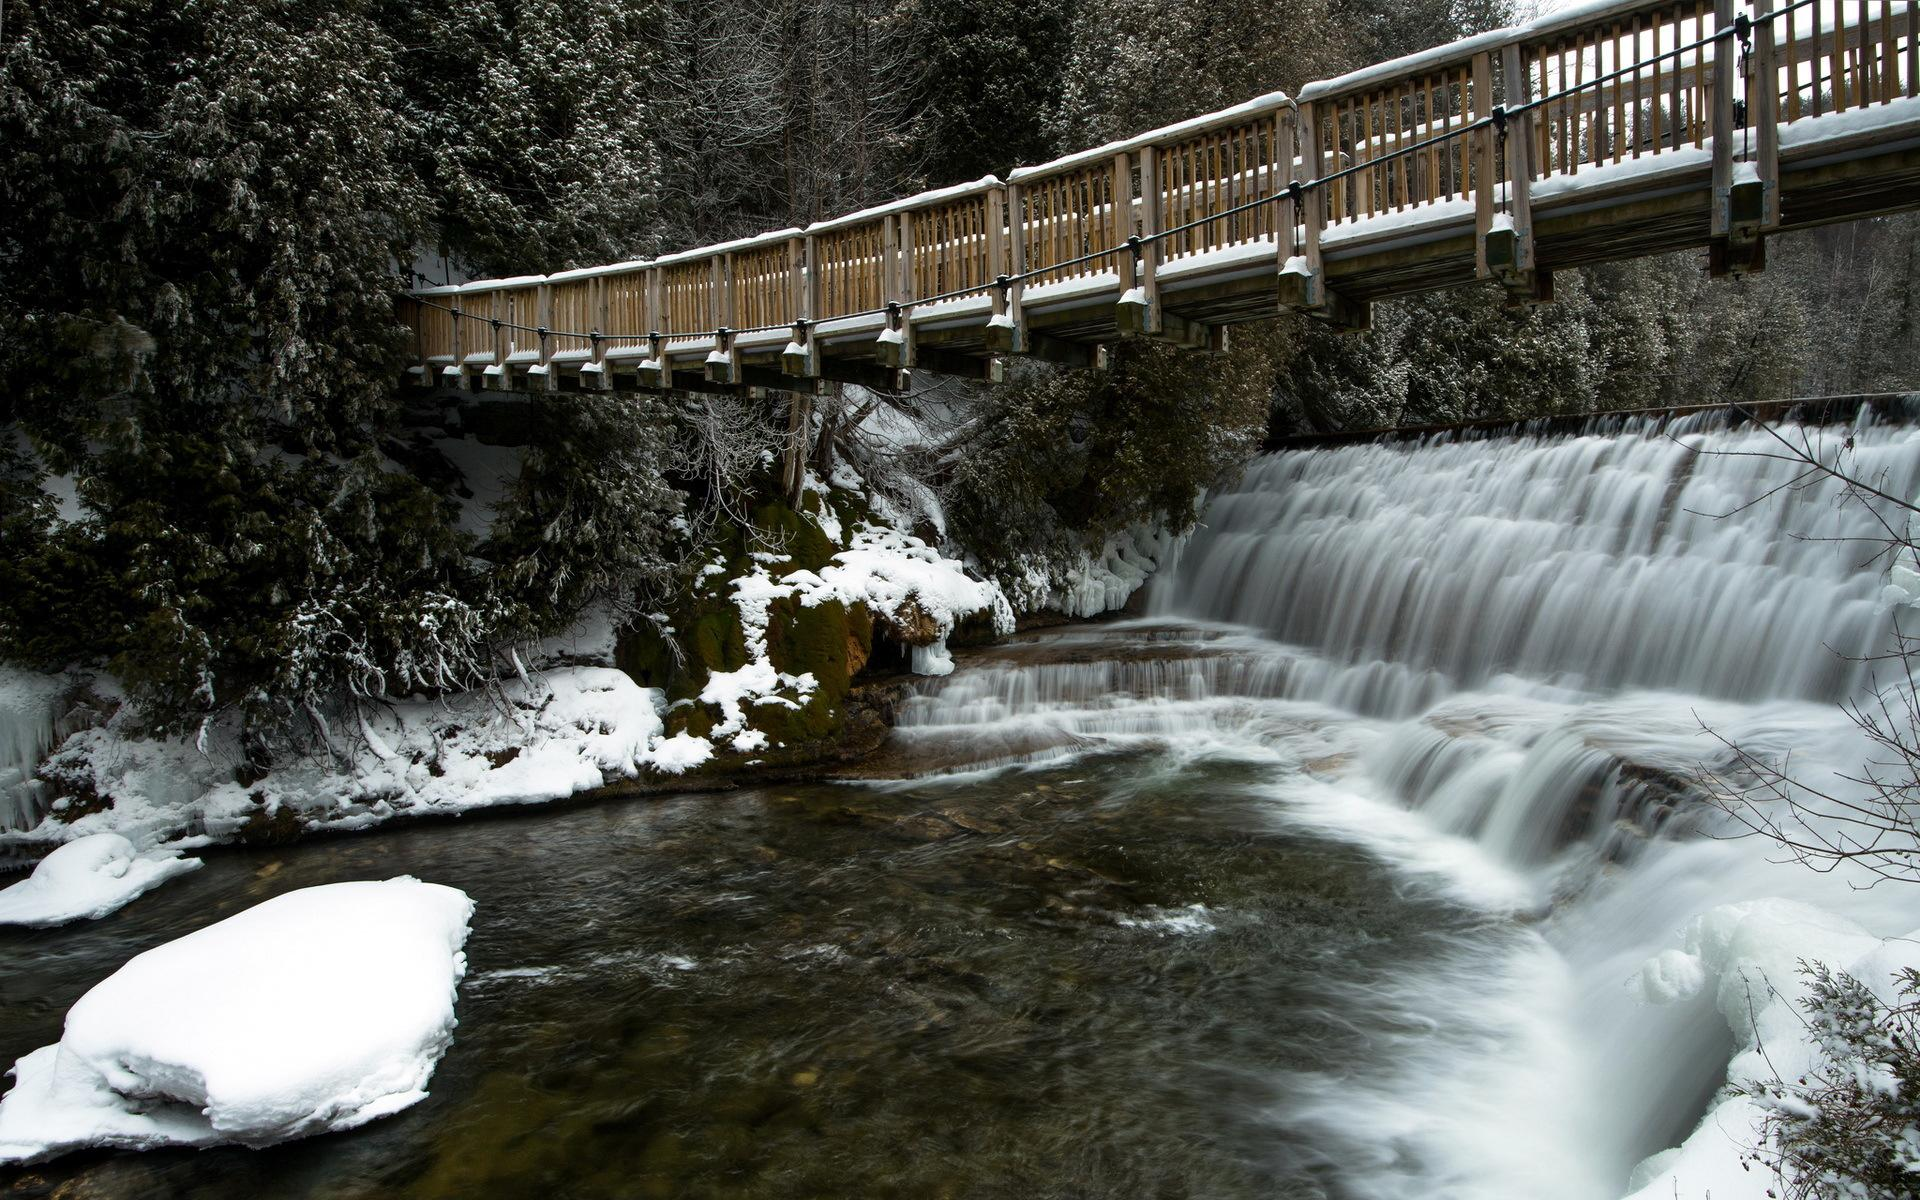 Animated Waterfalls Wallpapers Free Download Hd River Bridge Winter Landscape Waterfall Hd Pictures